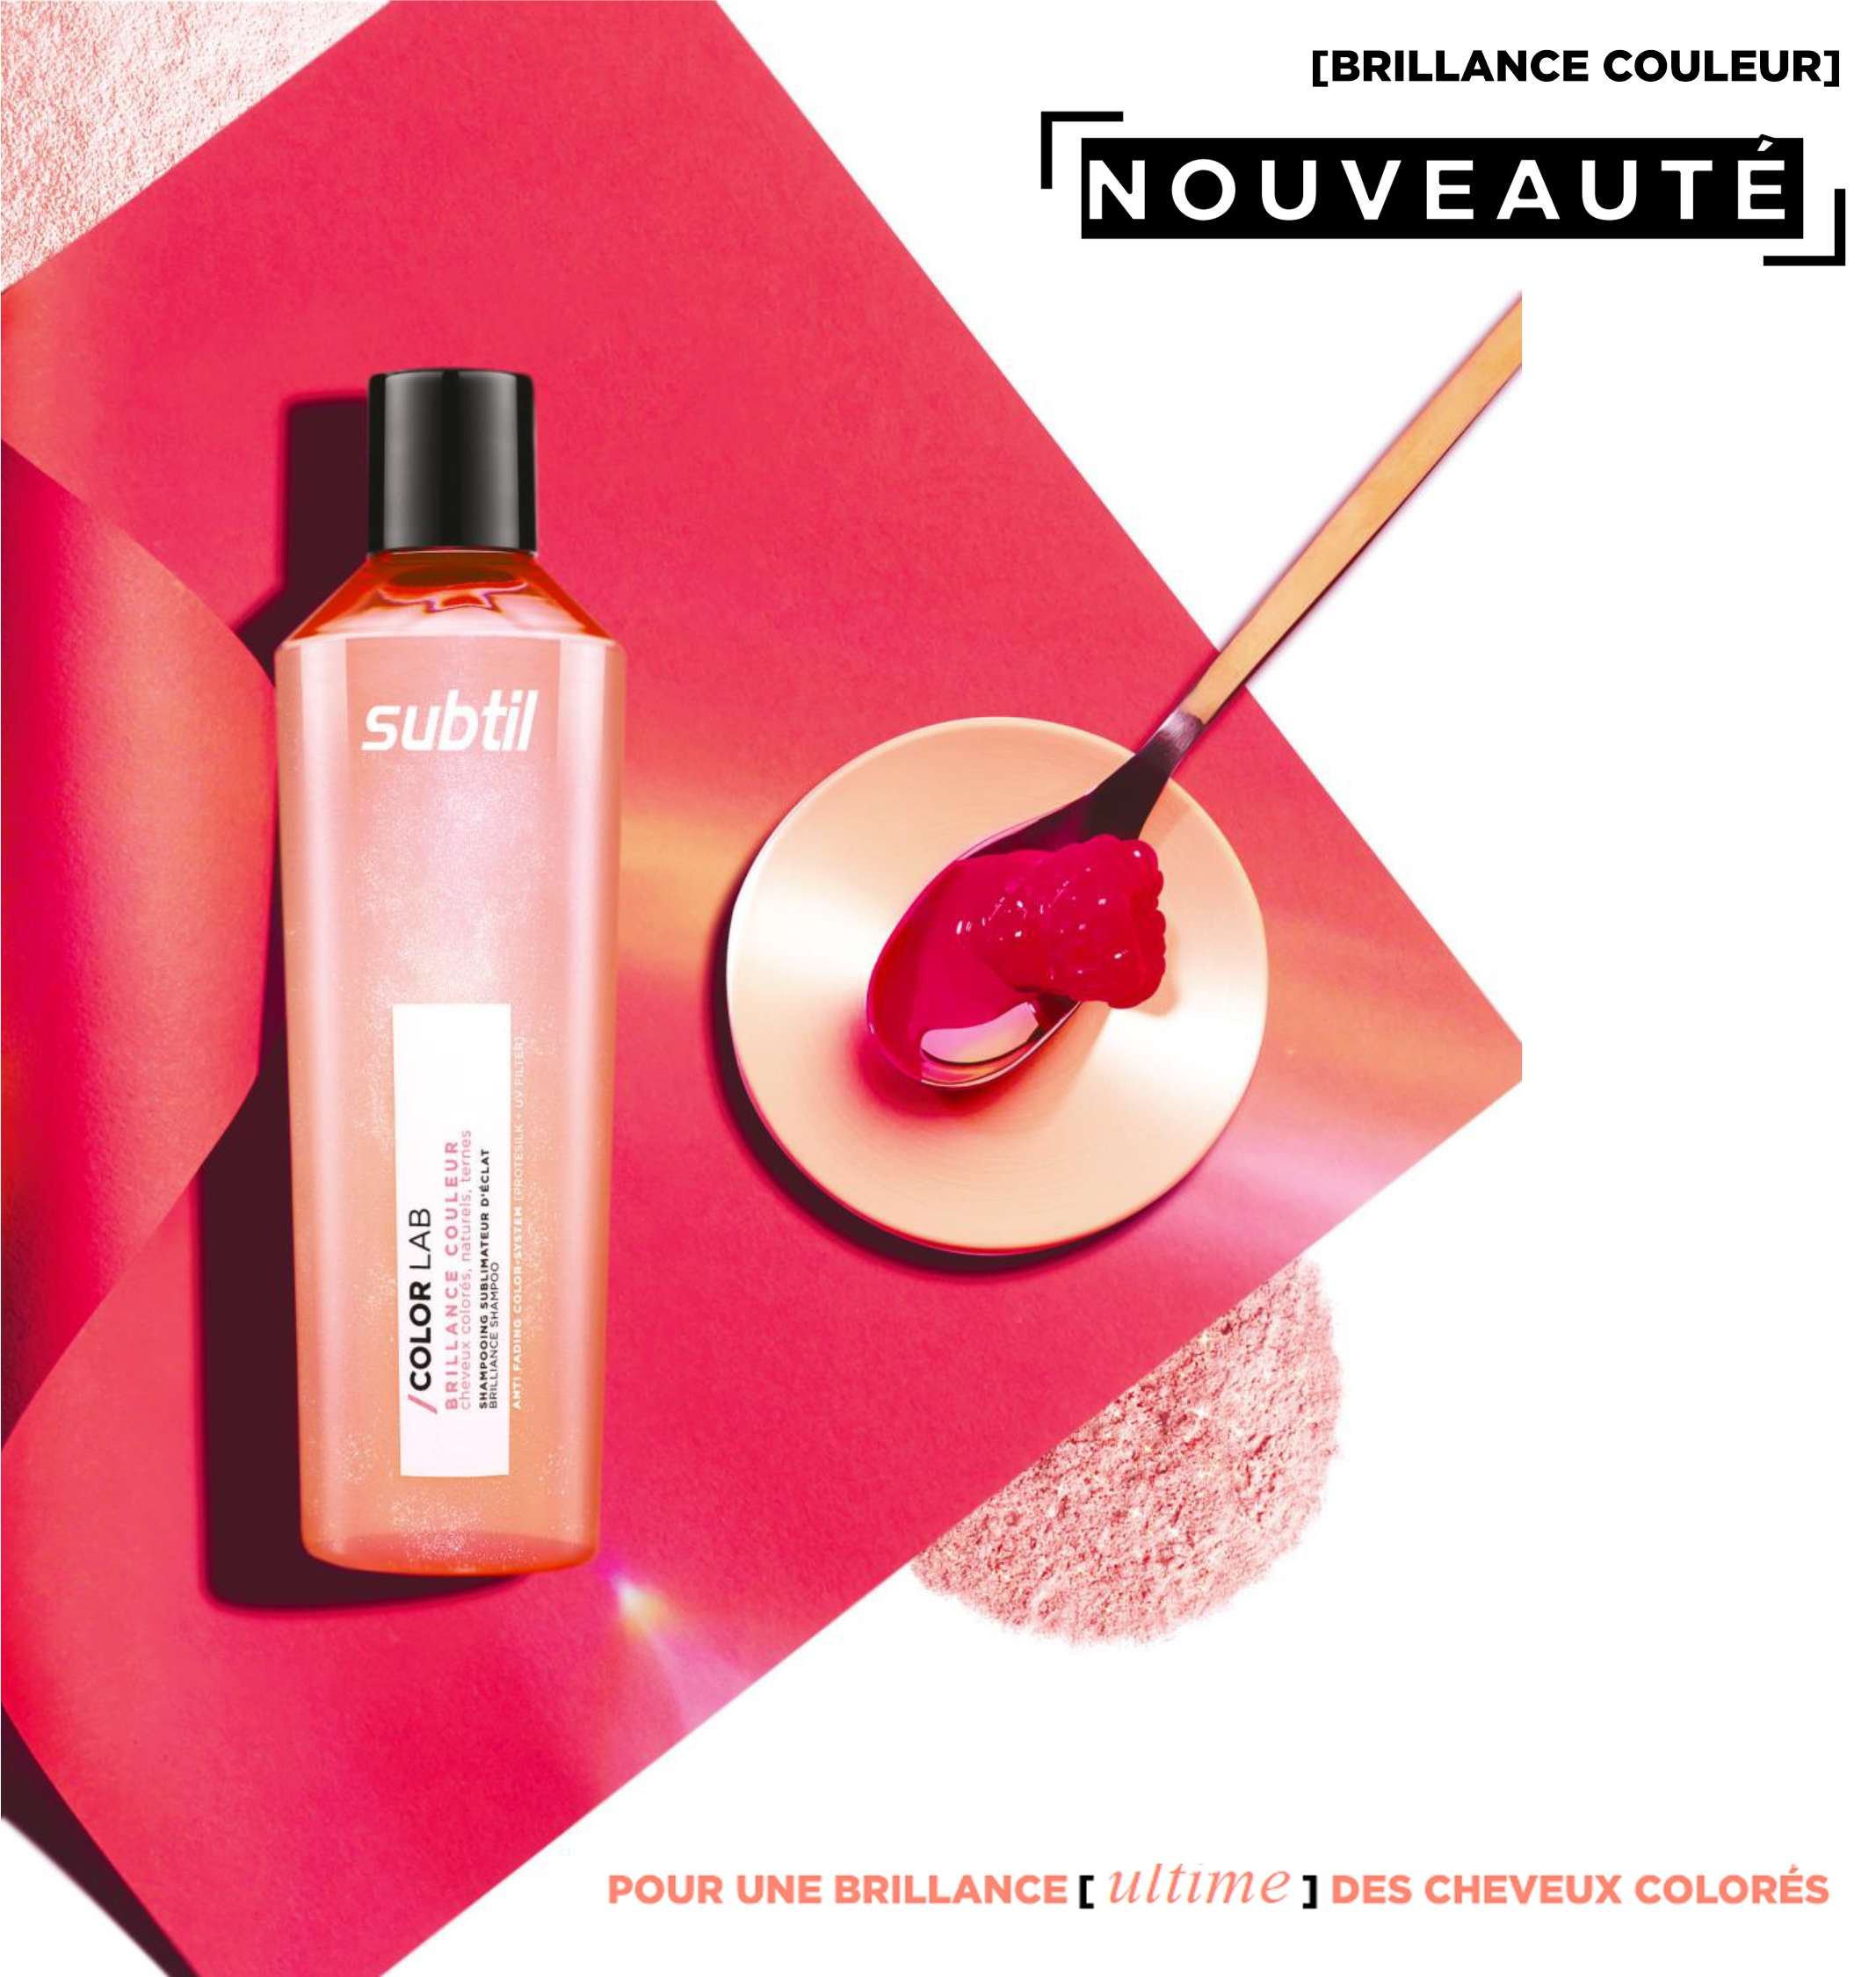 SUBTIL COLORLAB BRILLANCE